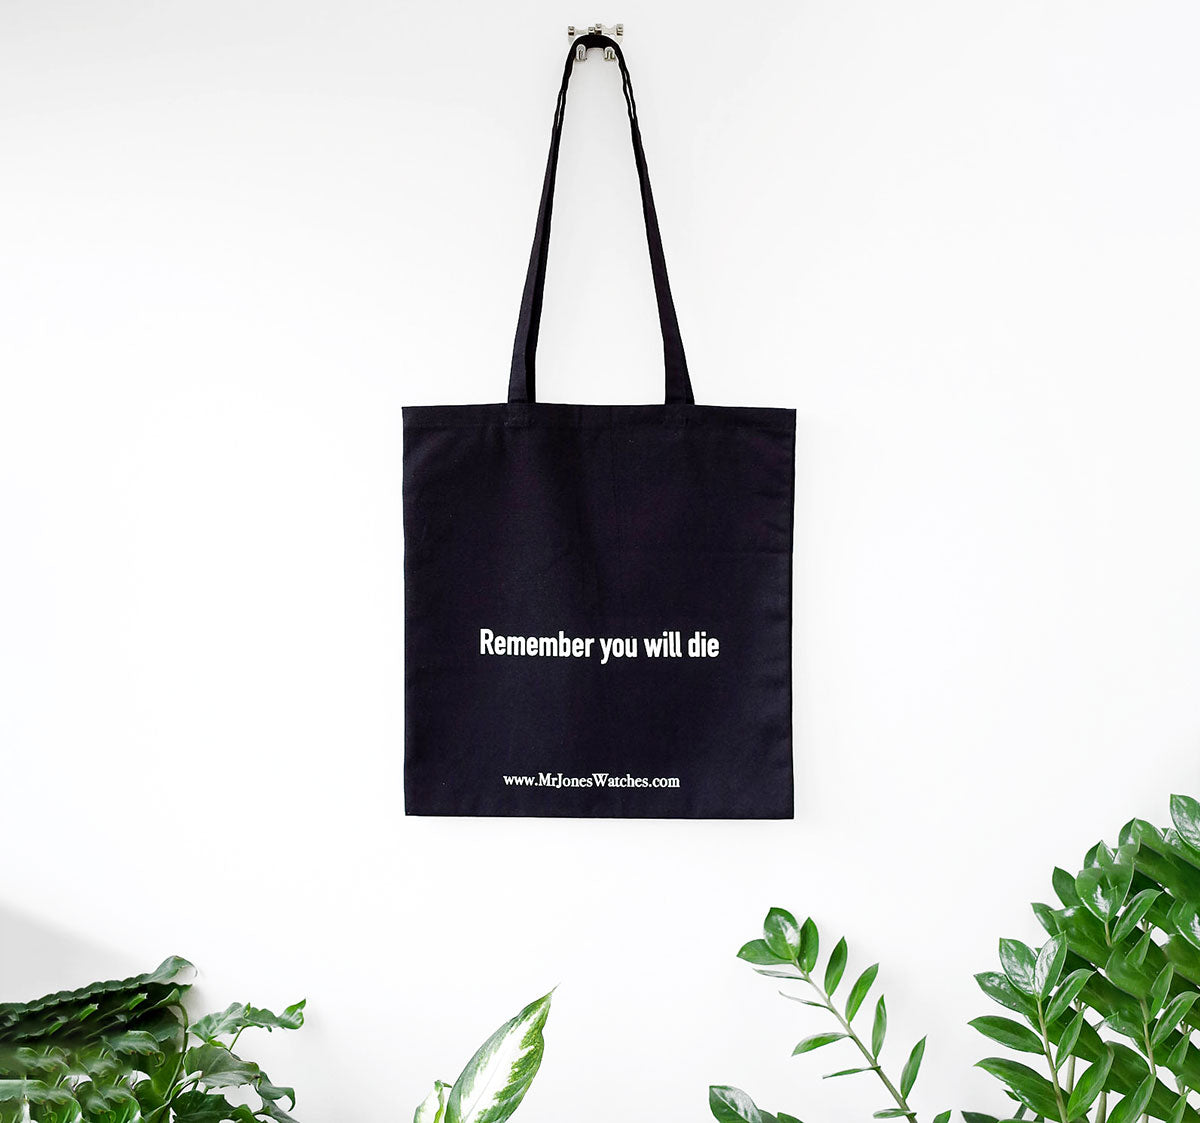 Remember you will die tote bag